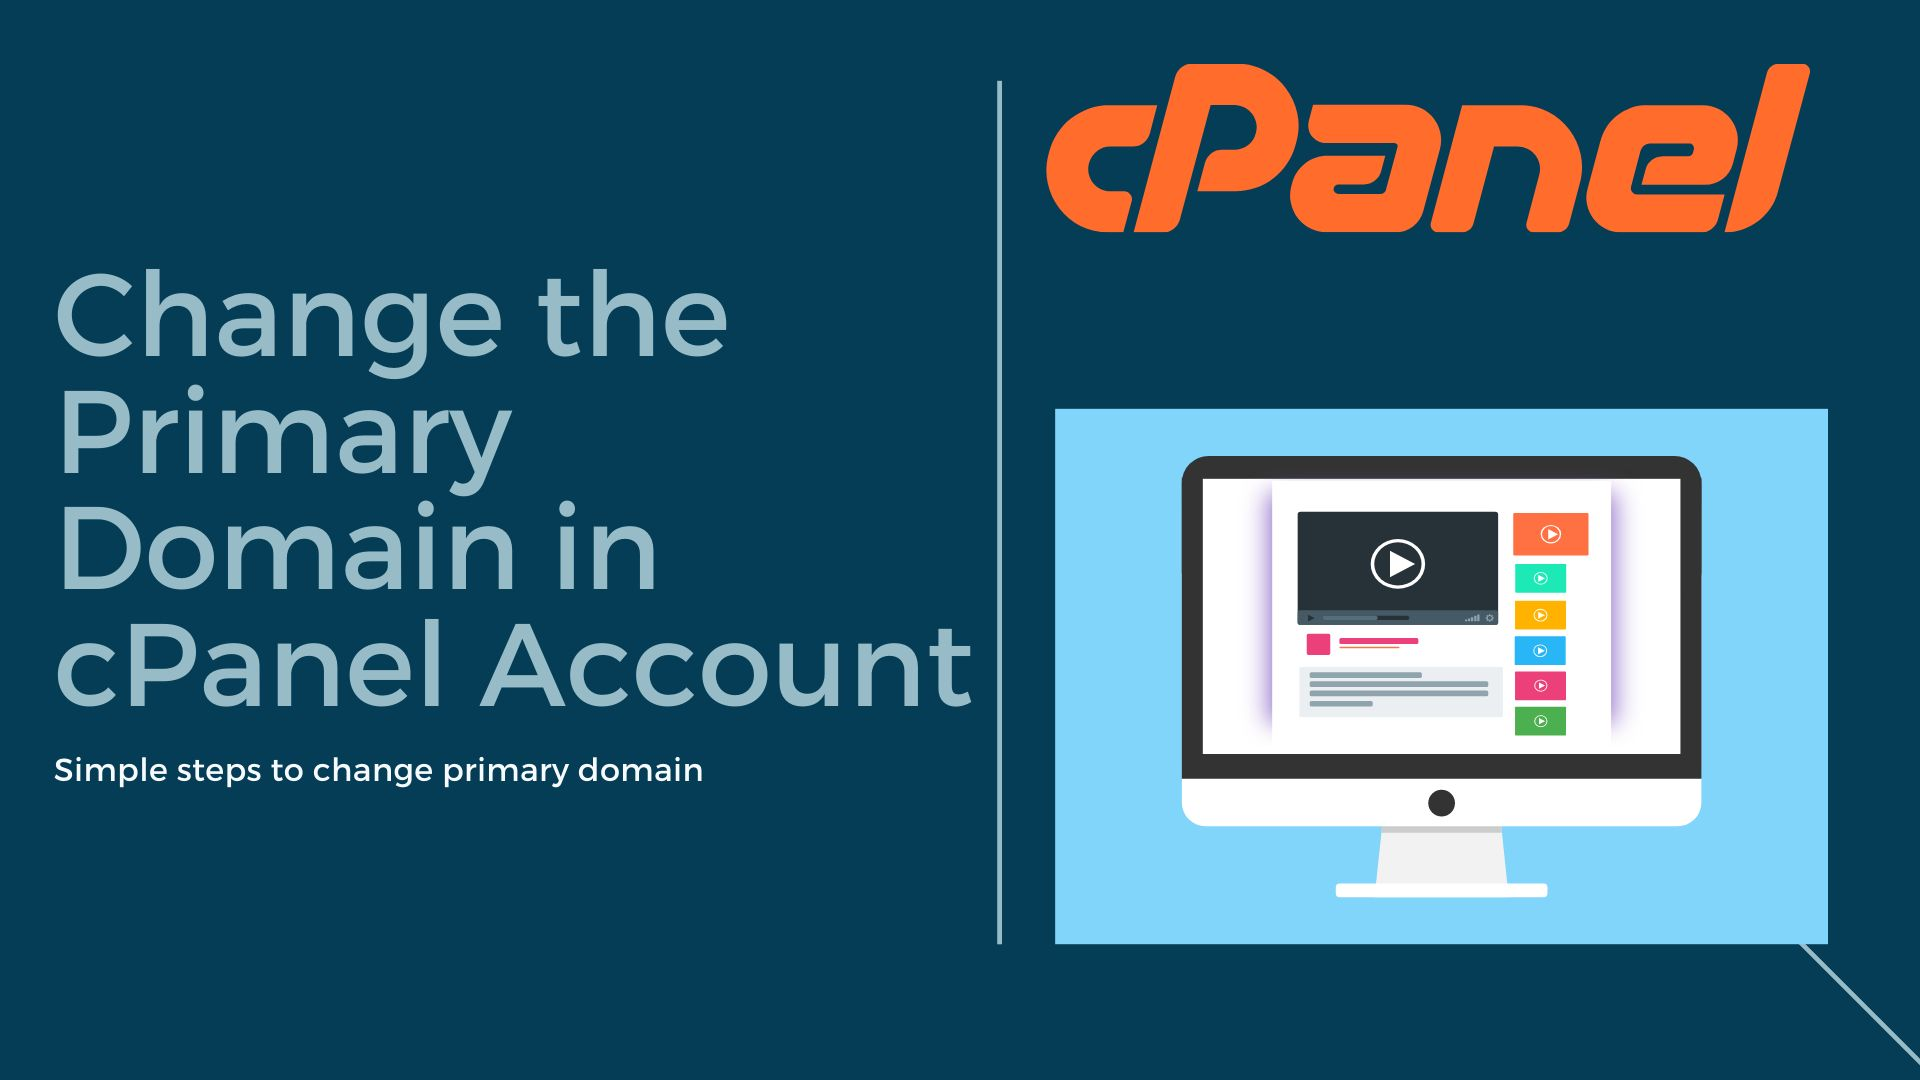 Change primary domain in cpanel